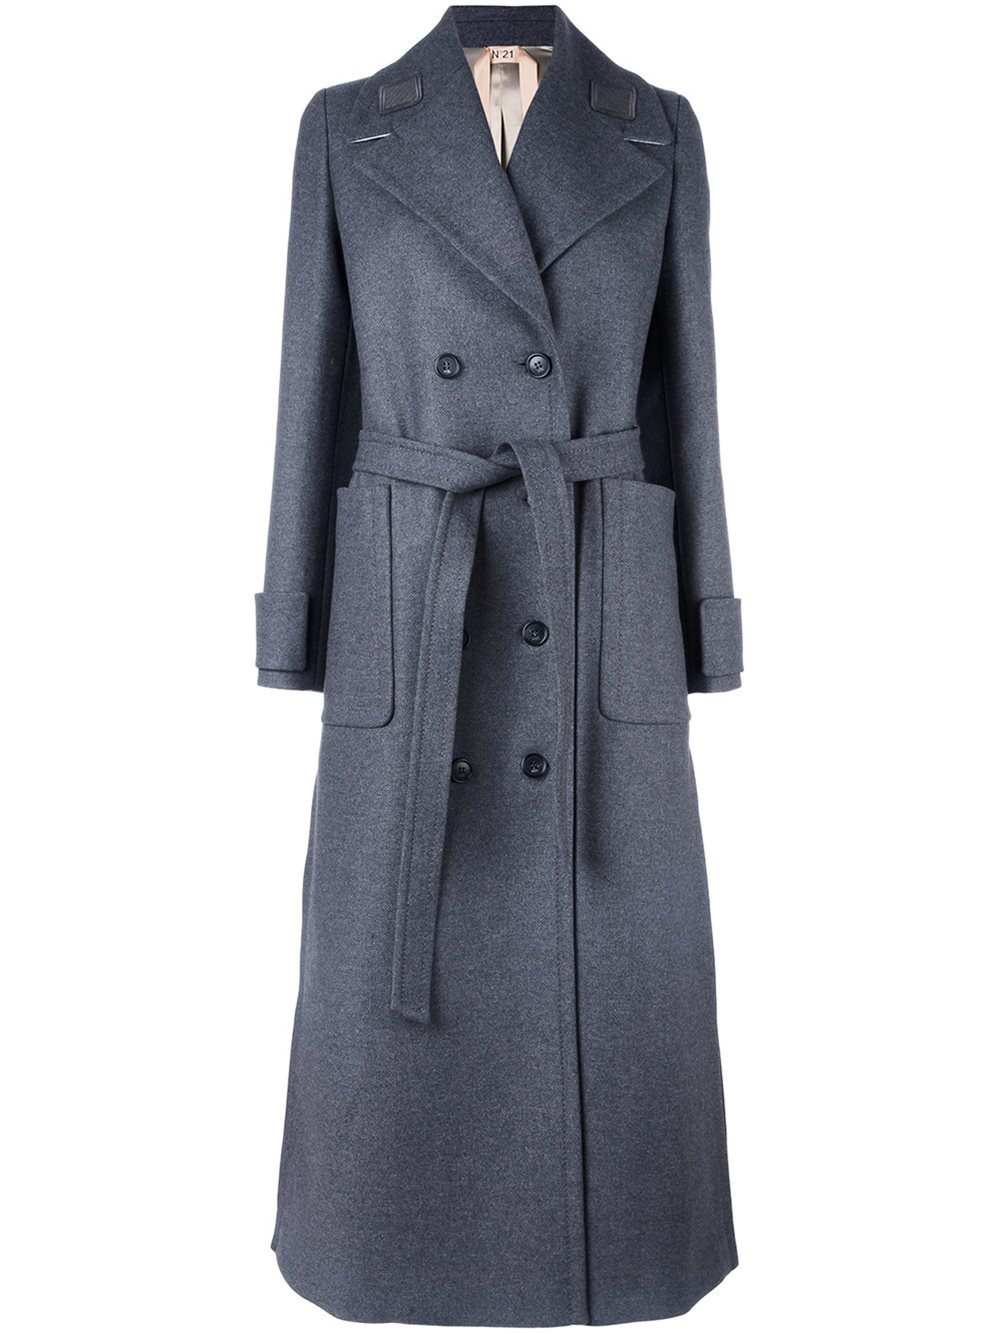 Lyst - Nu00b021 No21 Double Breasted Coat in Gray